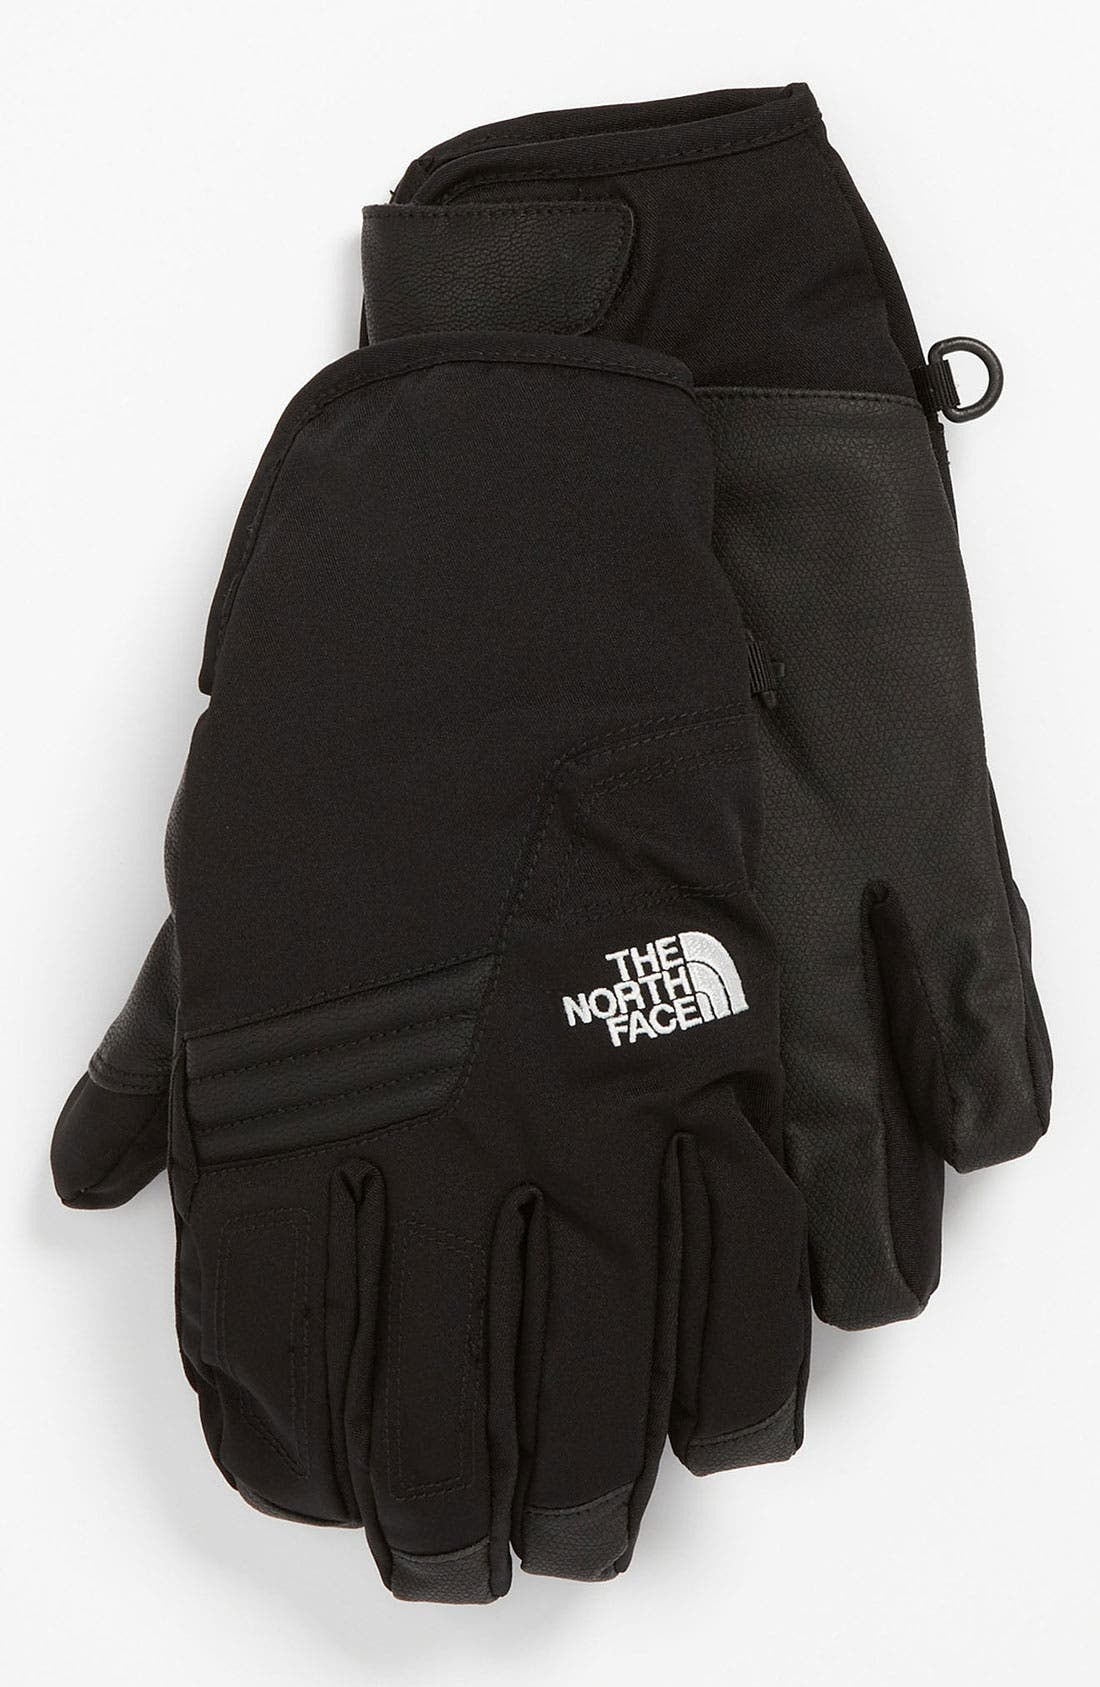 Alternate Image 1 Selected - The North Face 'Huckster' Gloves